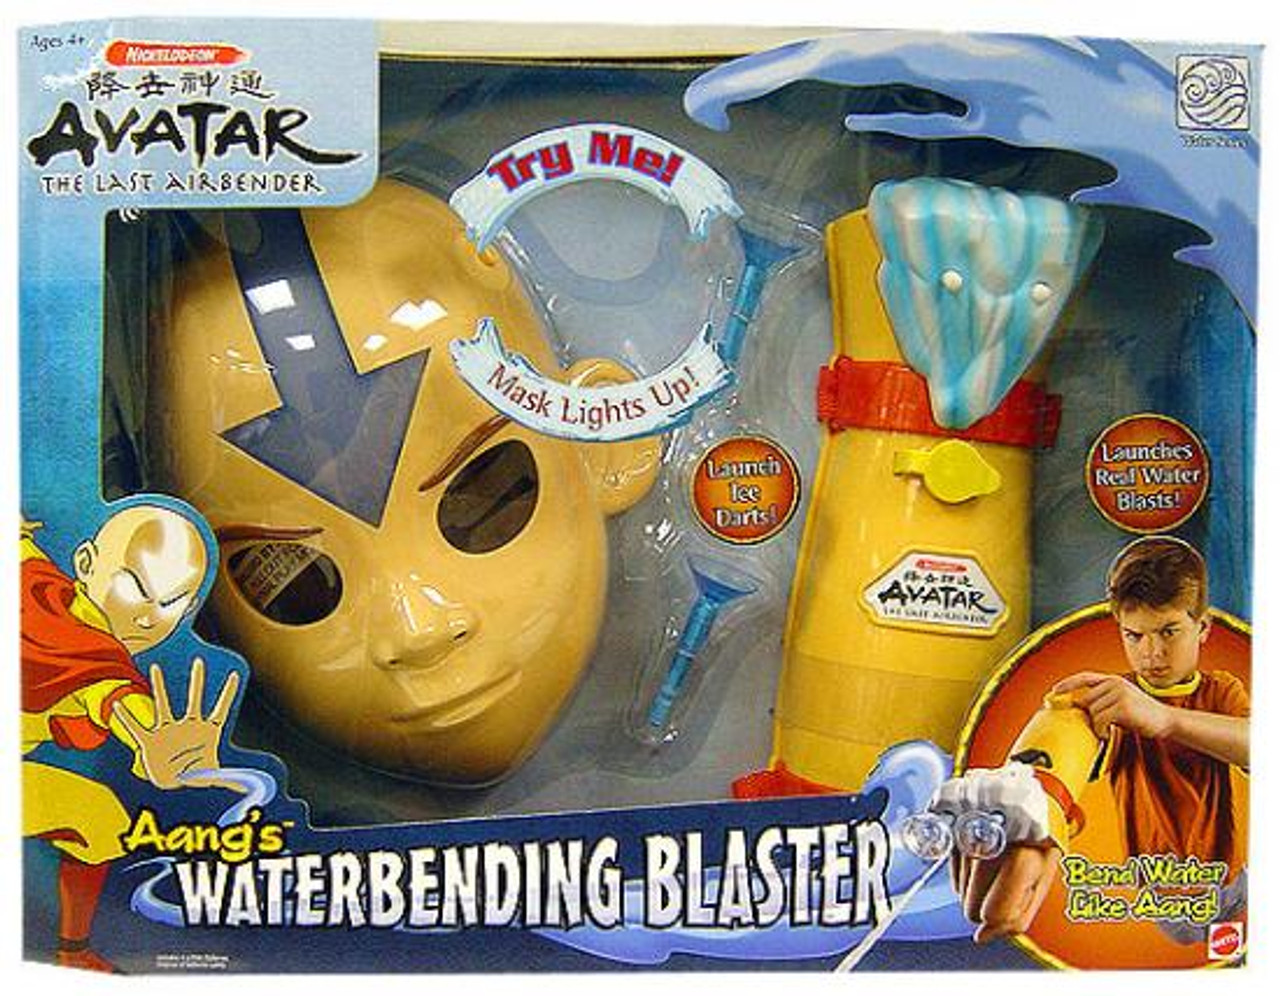 Avatar the Last Airbender Aang's Waterbending Blaster Roleplay toy